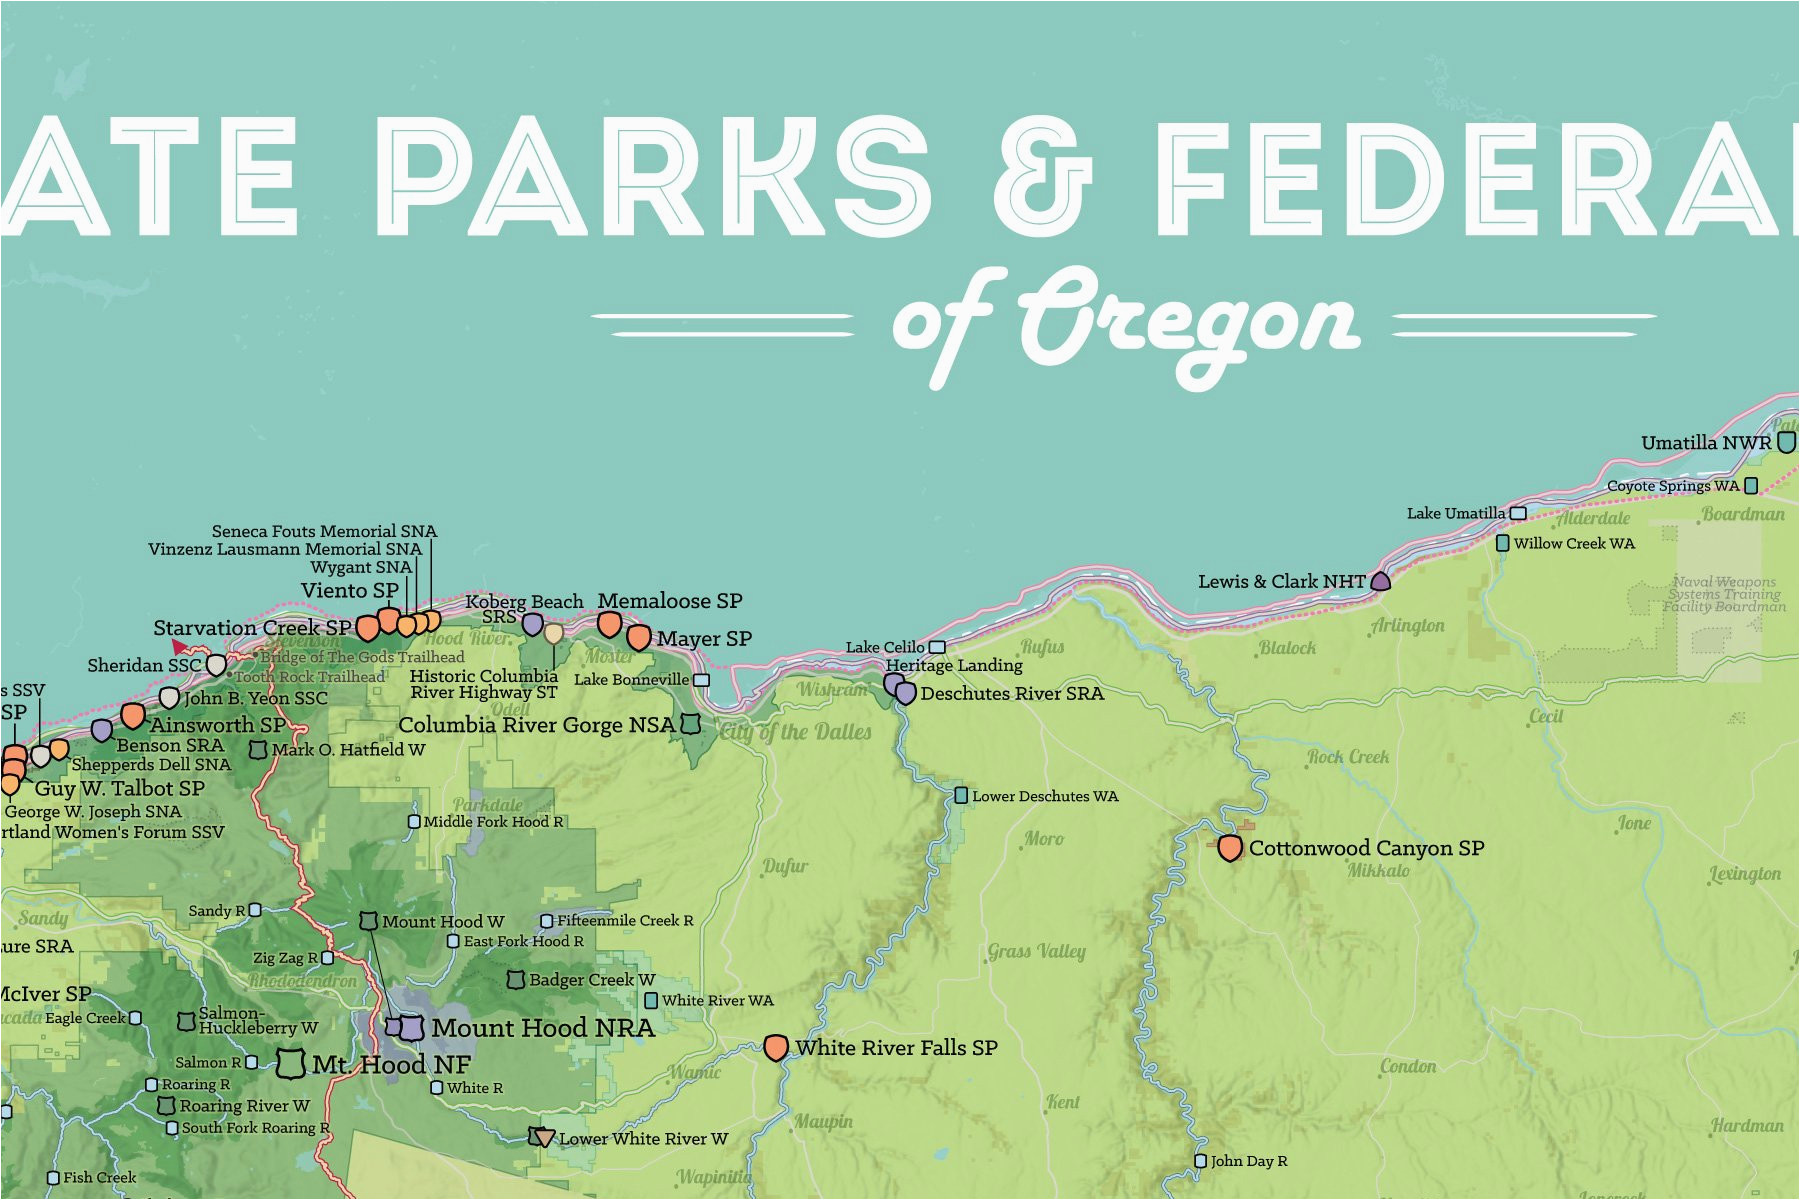 oregon state parks federal lands map 24x36 poster best maps ever